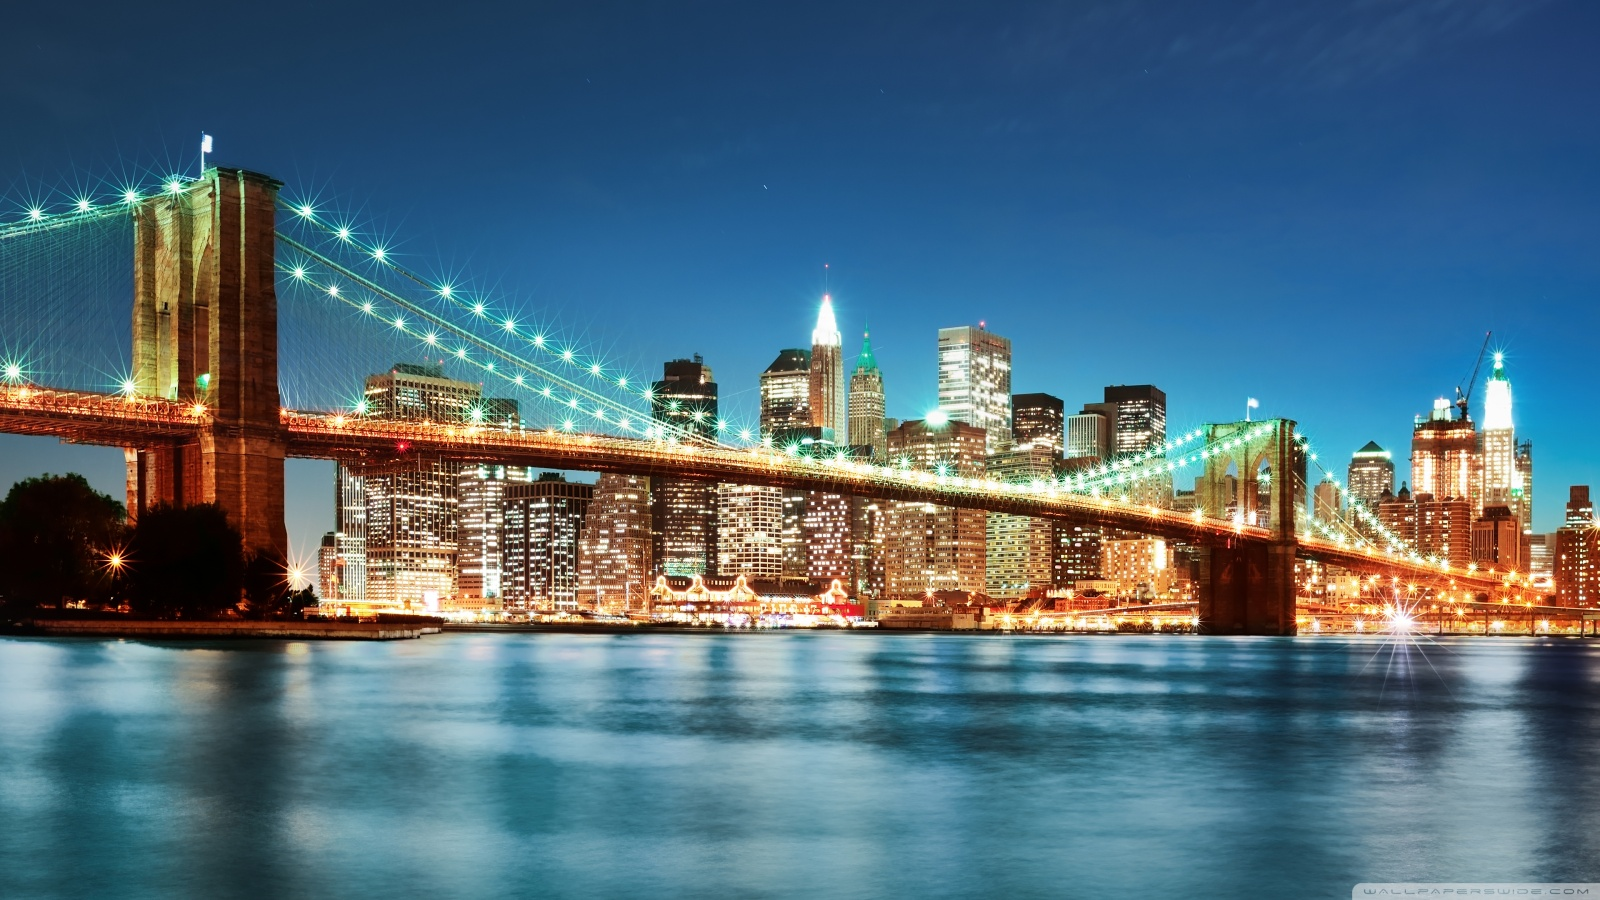 New York City night lights wallpaper 49572